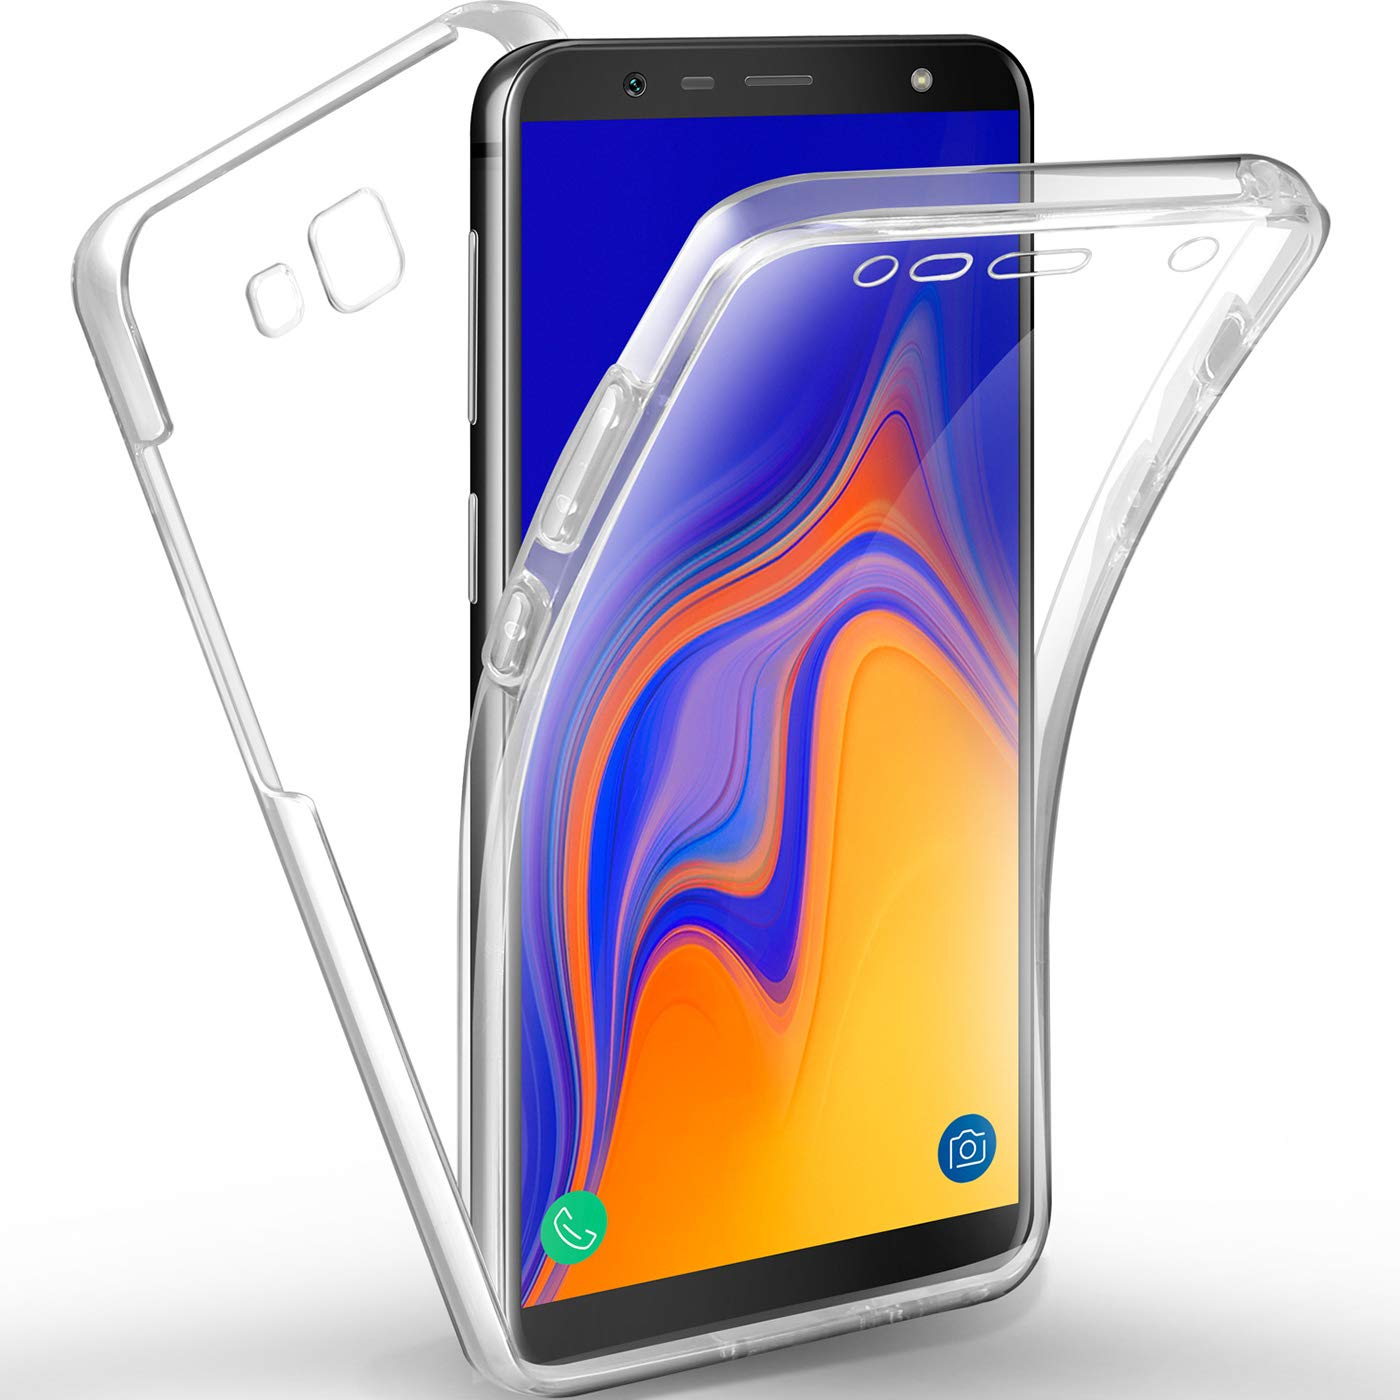 new arrival 53f8a 146af AROYI Samsung Galaxy J4 Plus Case 360 Degree Protection Phone Case,  Silicone Clear Cover [2 in 1 Hard PC Back + Soft TPU Front] Case for  Samsung ...